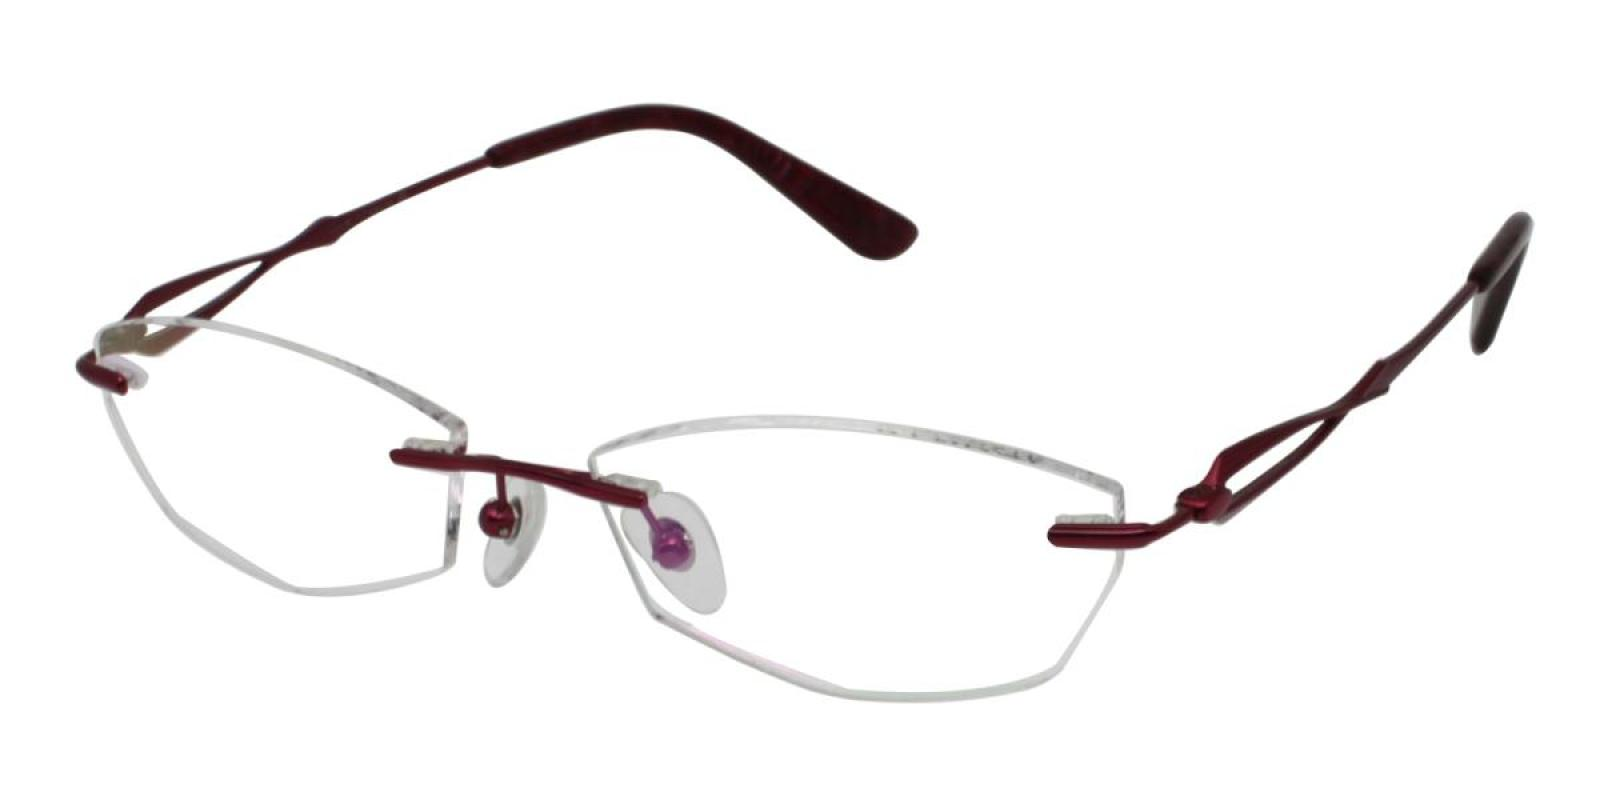 Pininic-Red-Varieties-Titanium-Eyeglasses-additional1